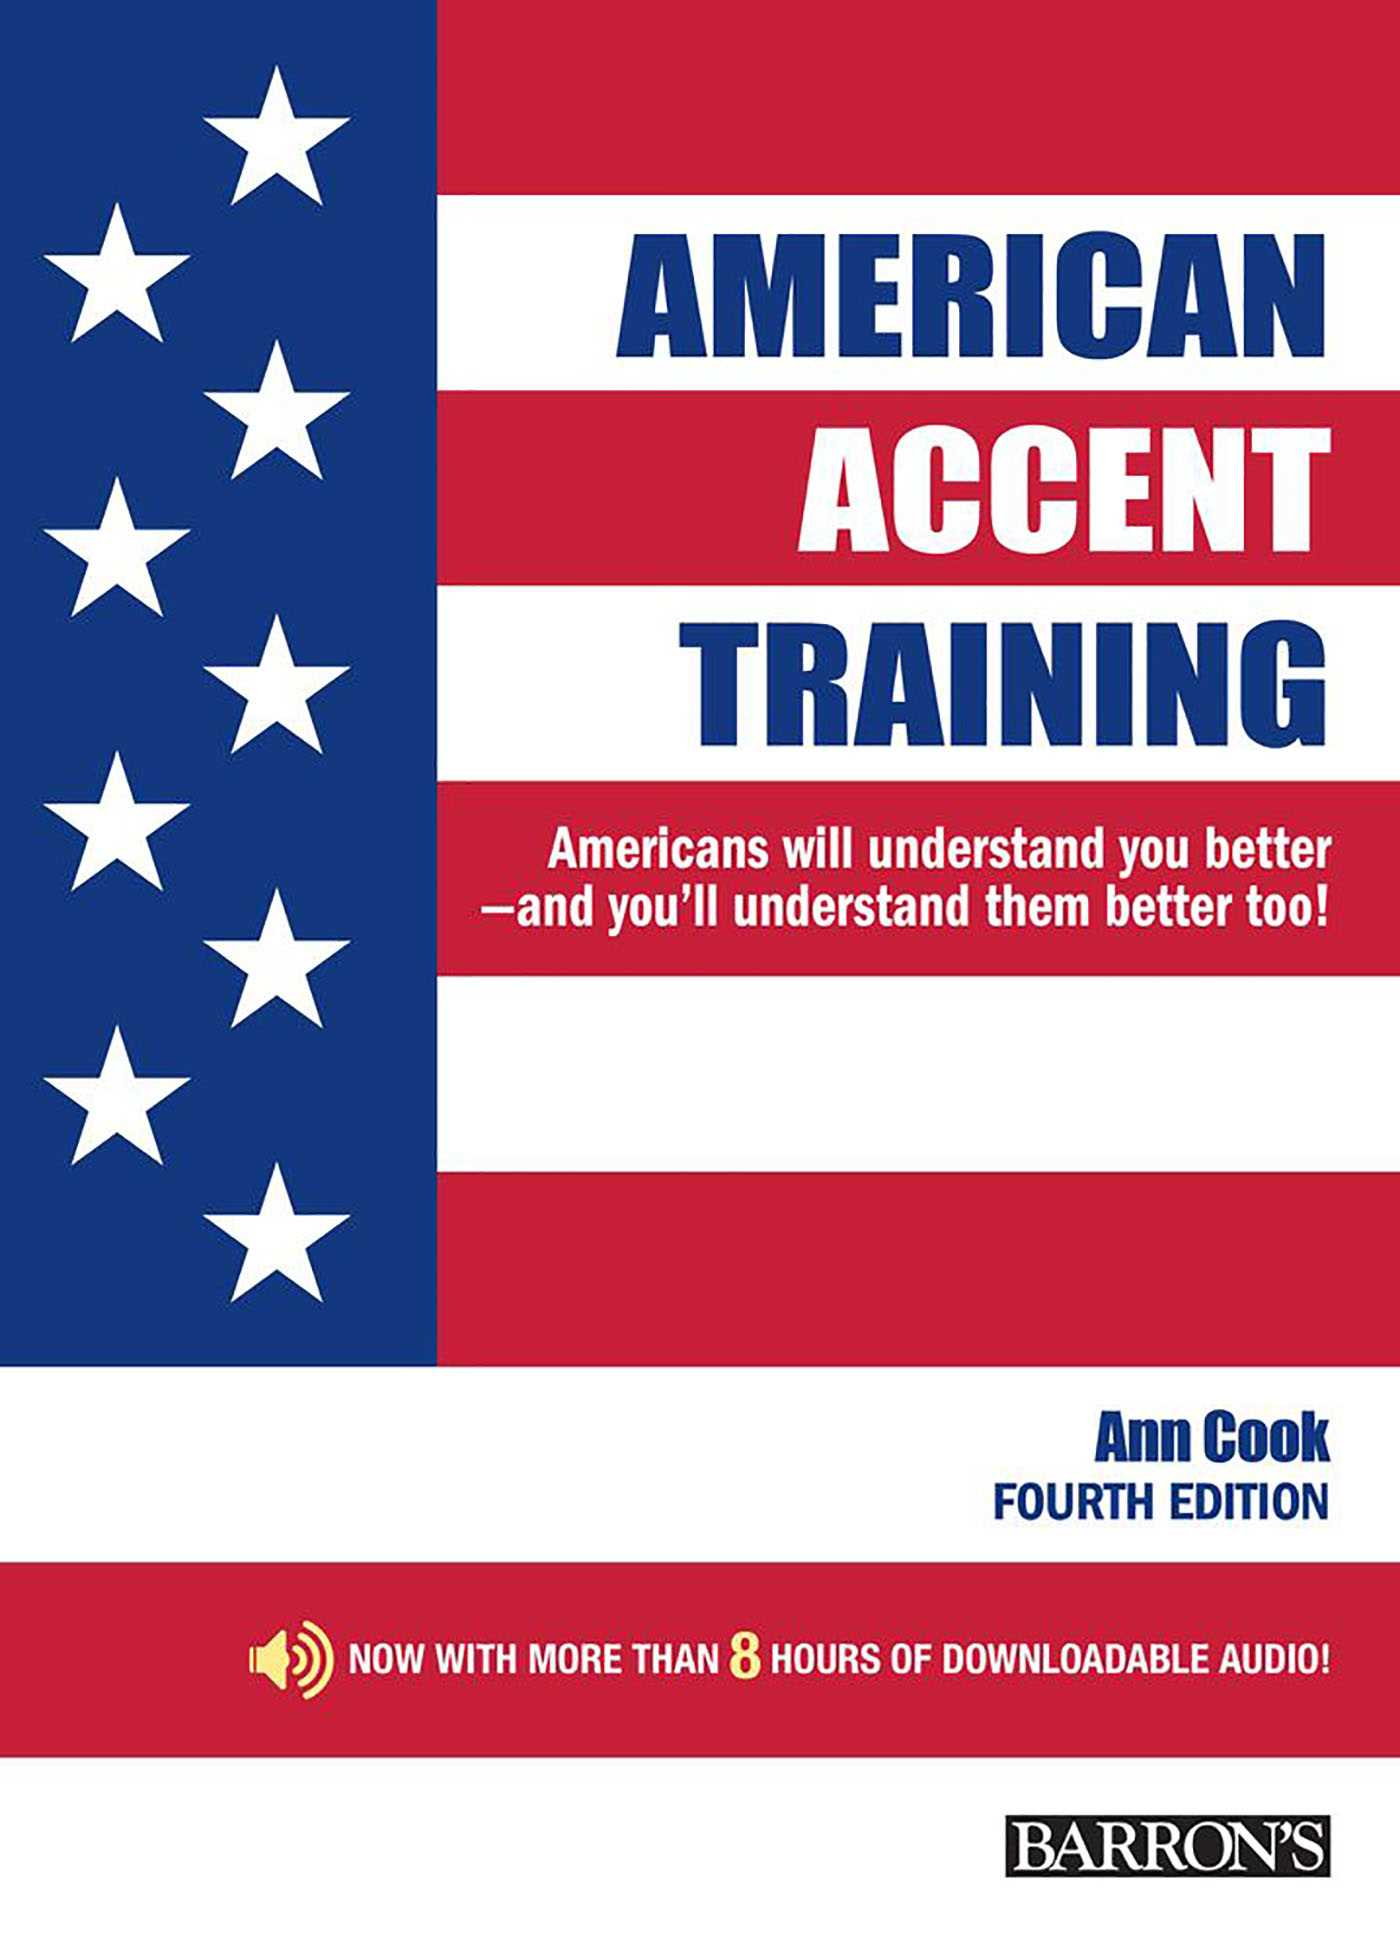 American accent training tutor how to speak english fluently.